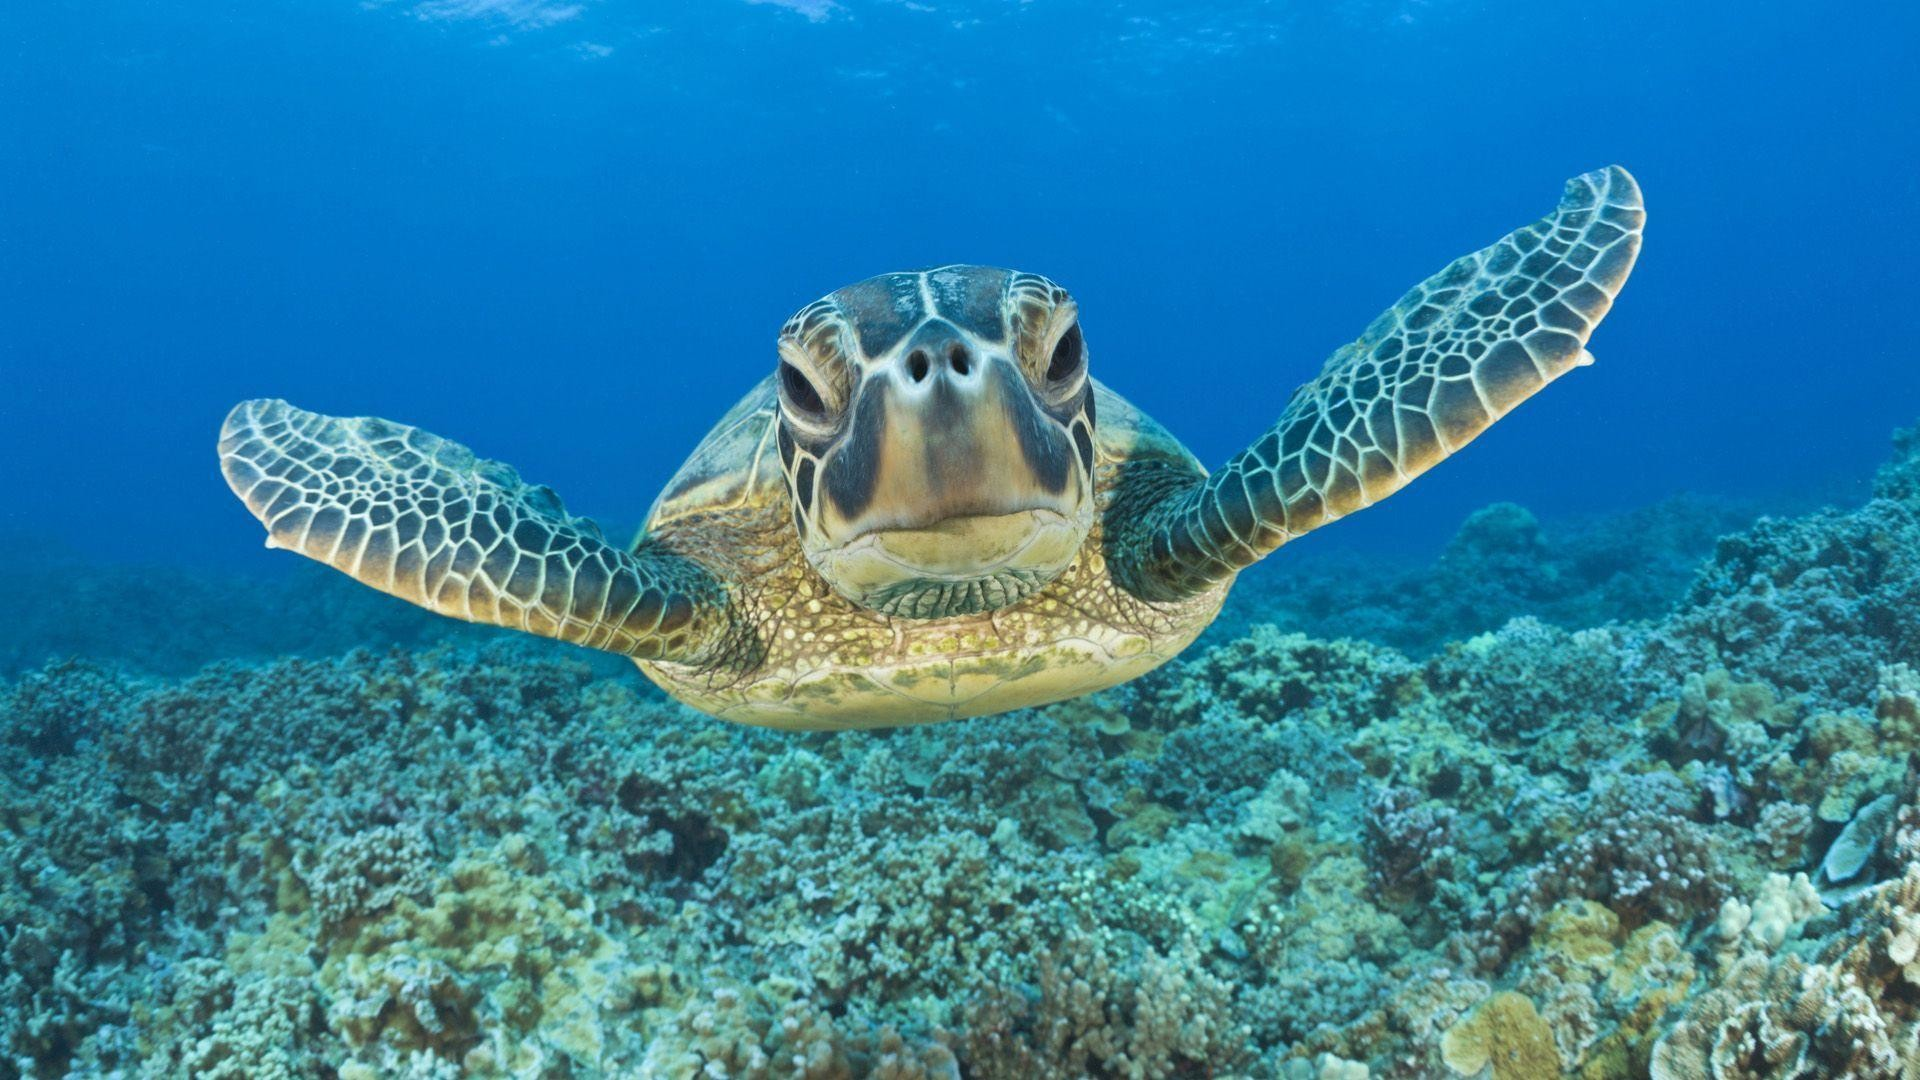 Funny 3d Animal Turtle Wallpapers Hd: Cute Turtle Wallpaper ·①